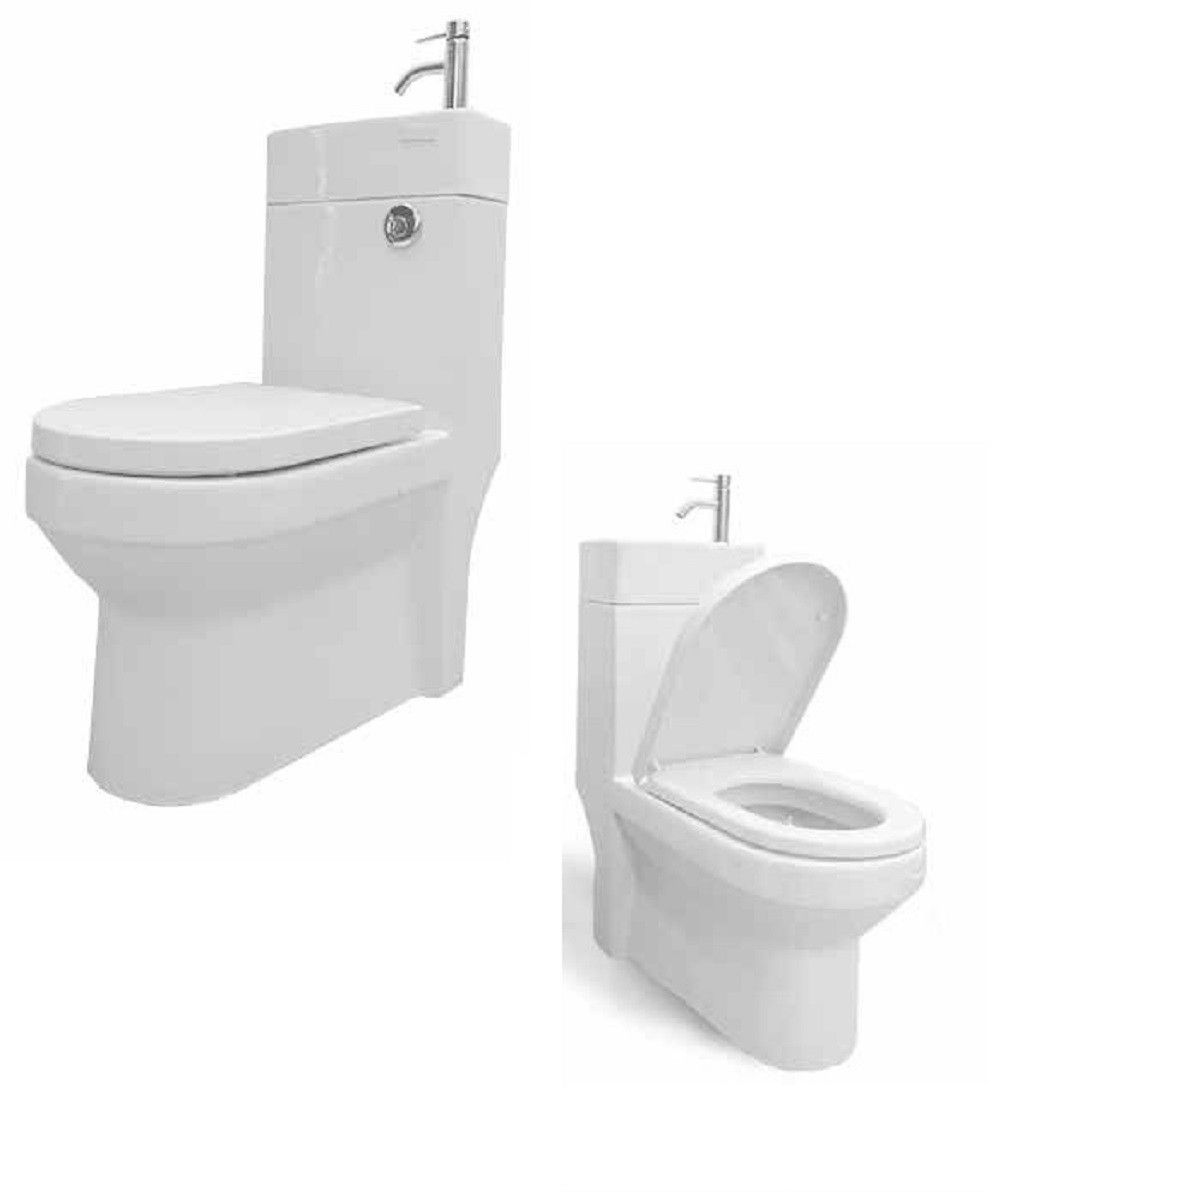 2 In One Toilet Seat. Combined Two In One Wash Basin  Toilet Bathroom Pinterest